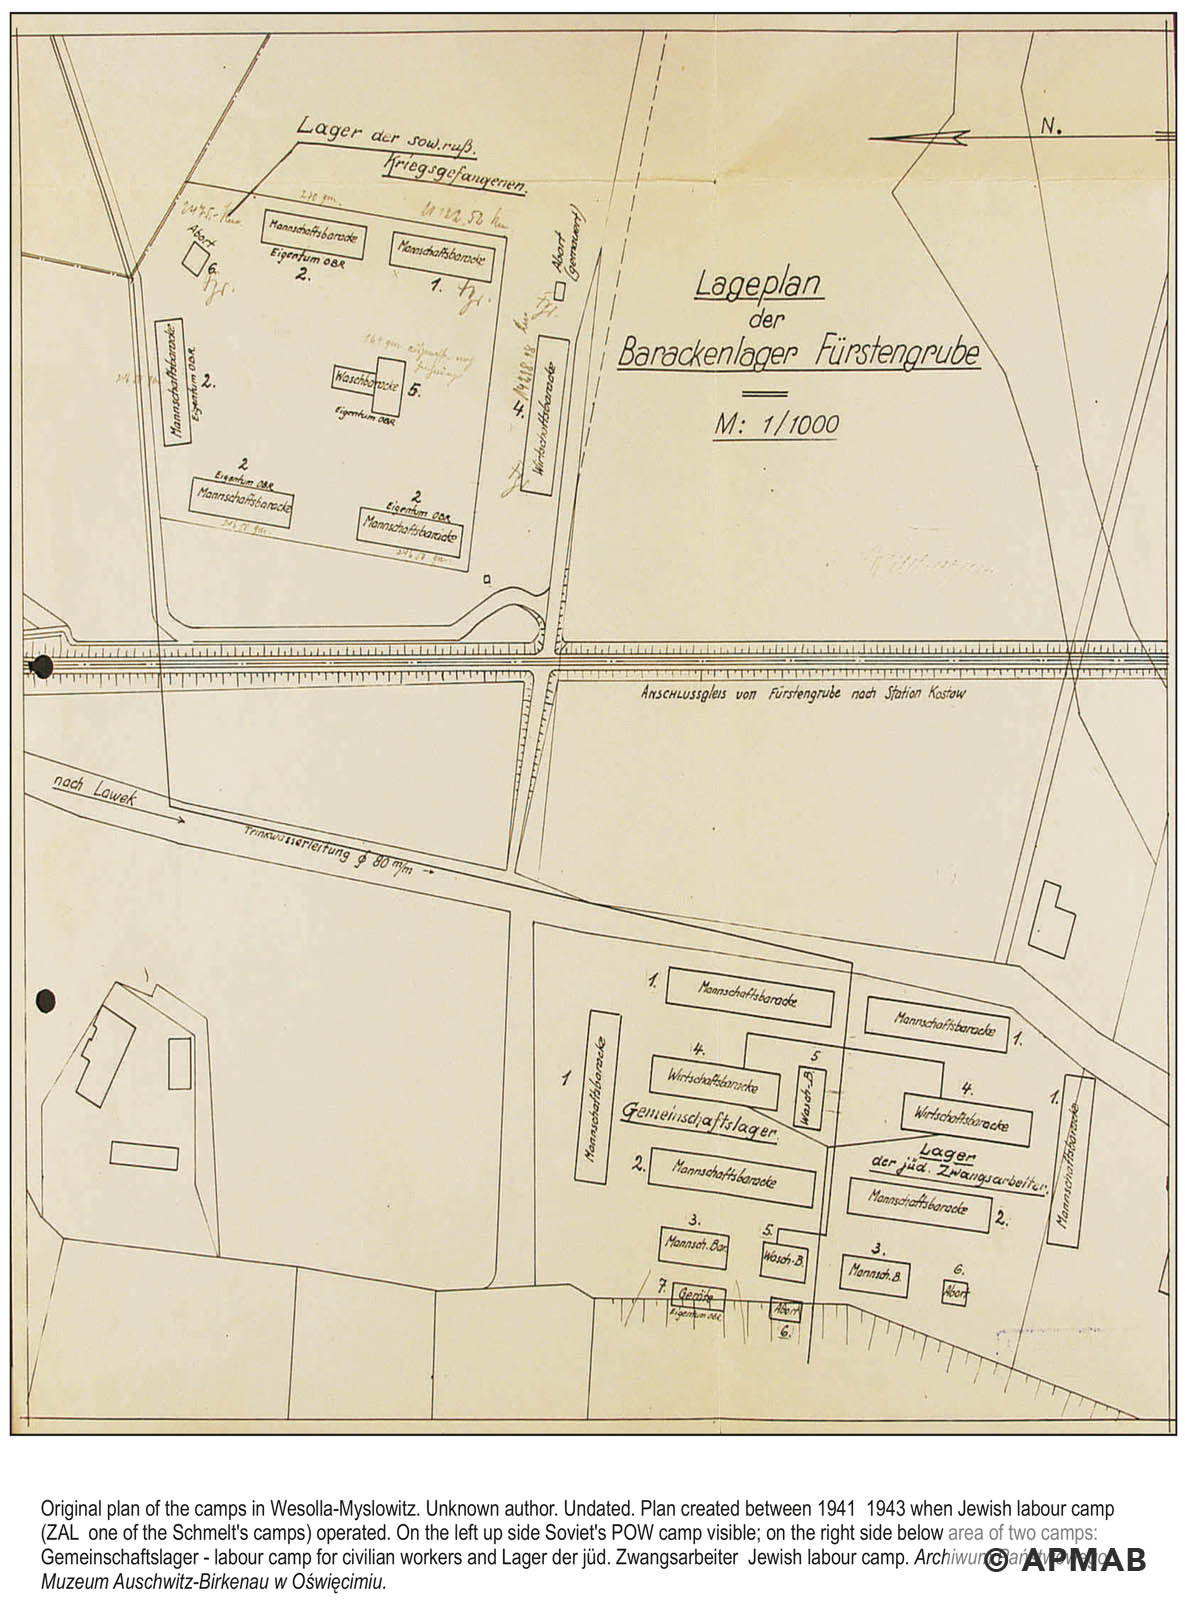 Technical drawing of camps in Wesola. APMAB